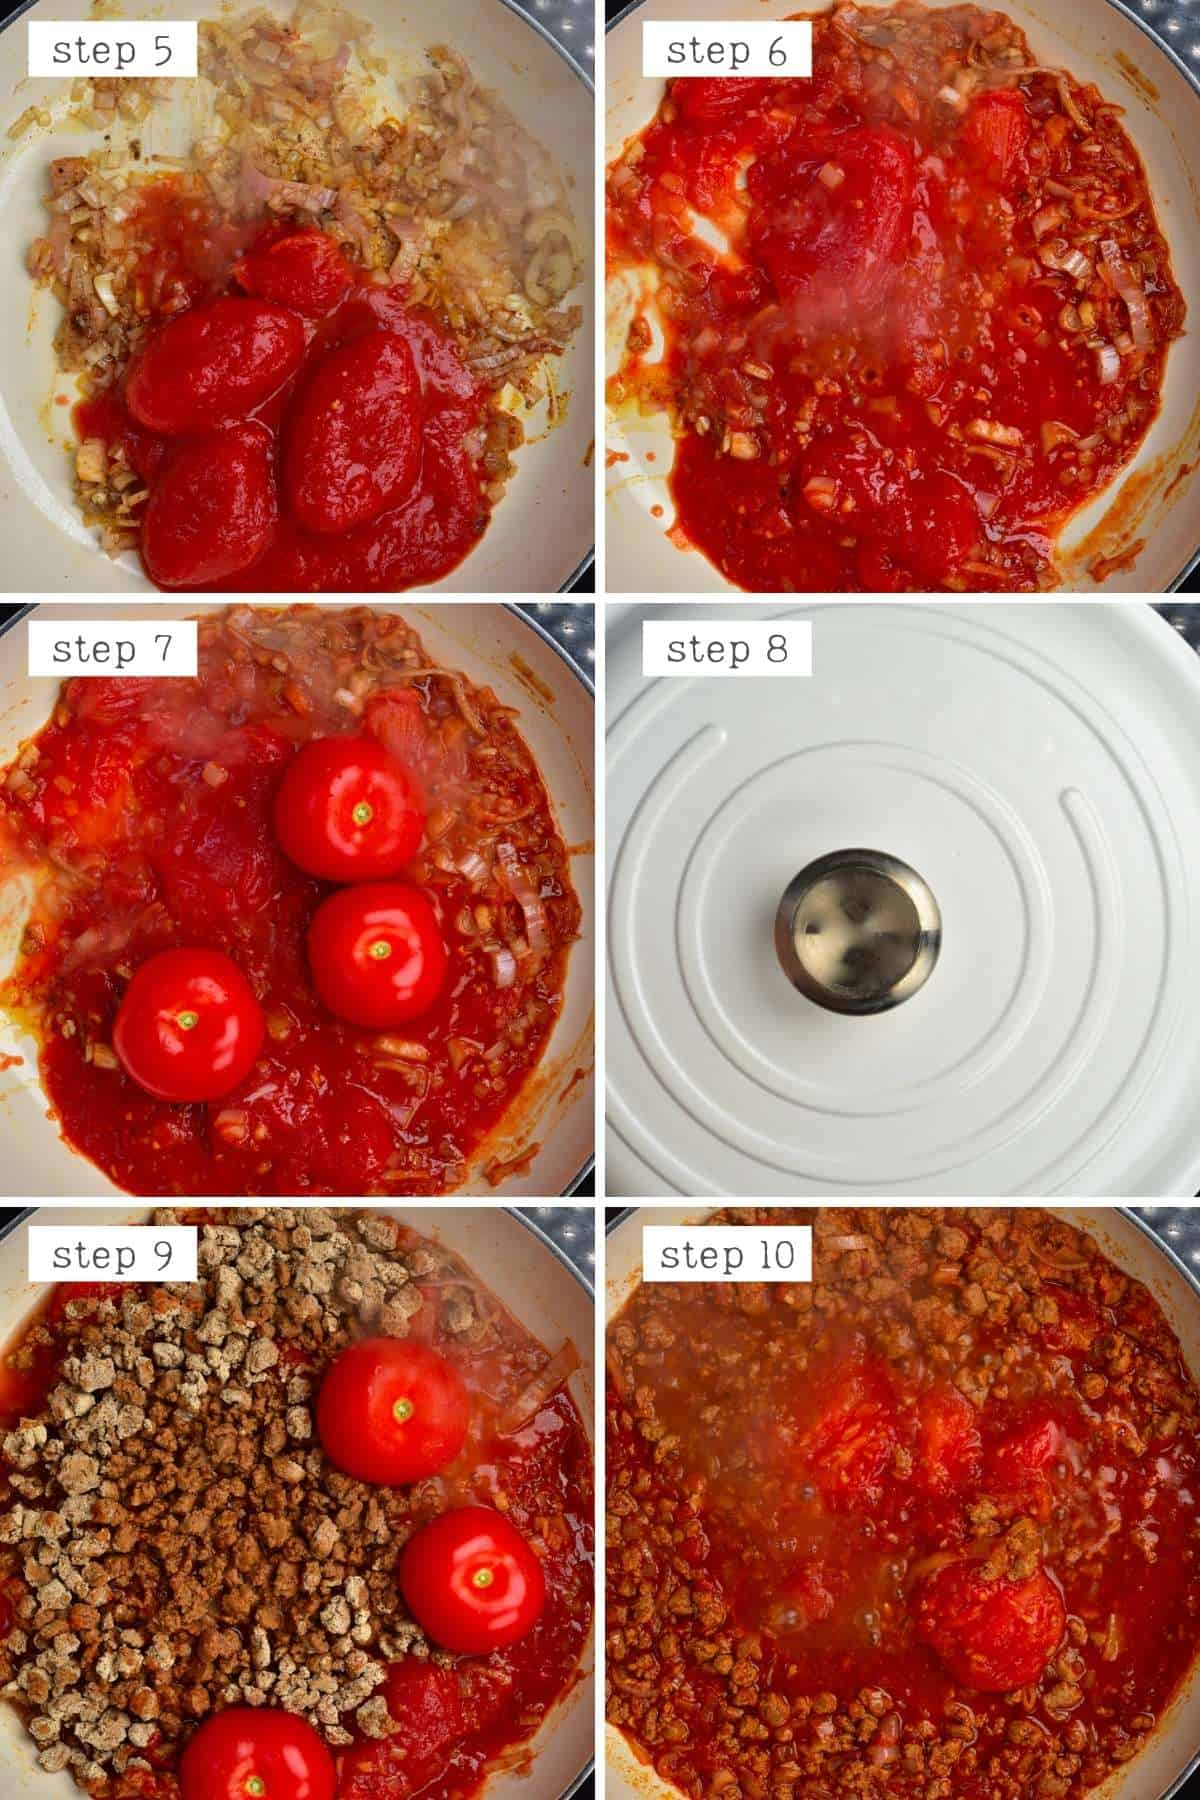 Steps for cooking vegan bolognese sauce